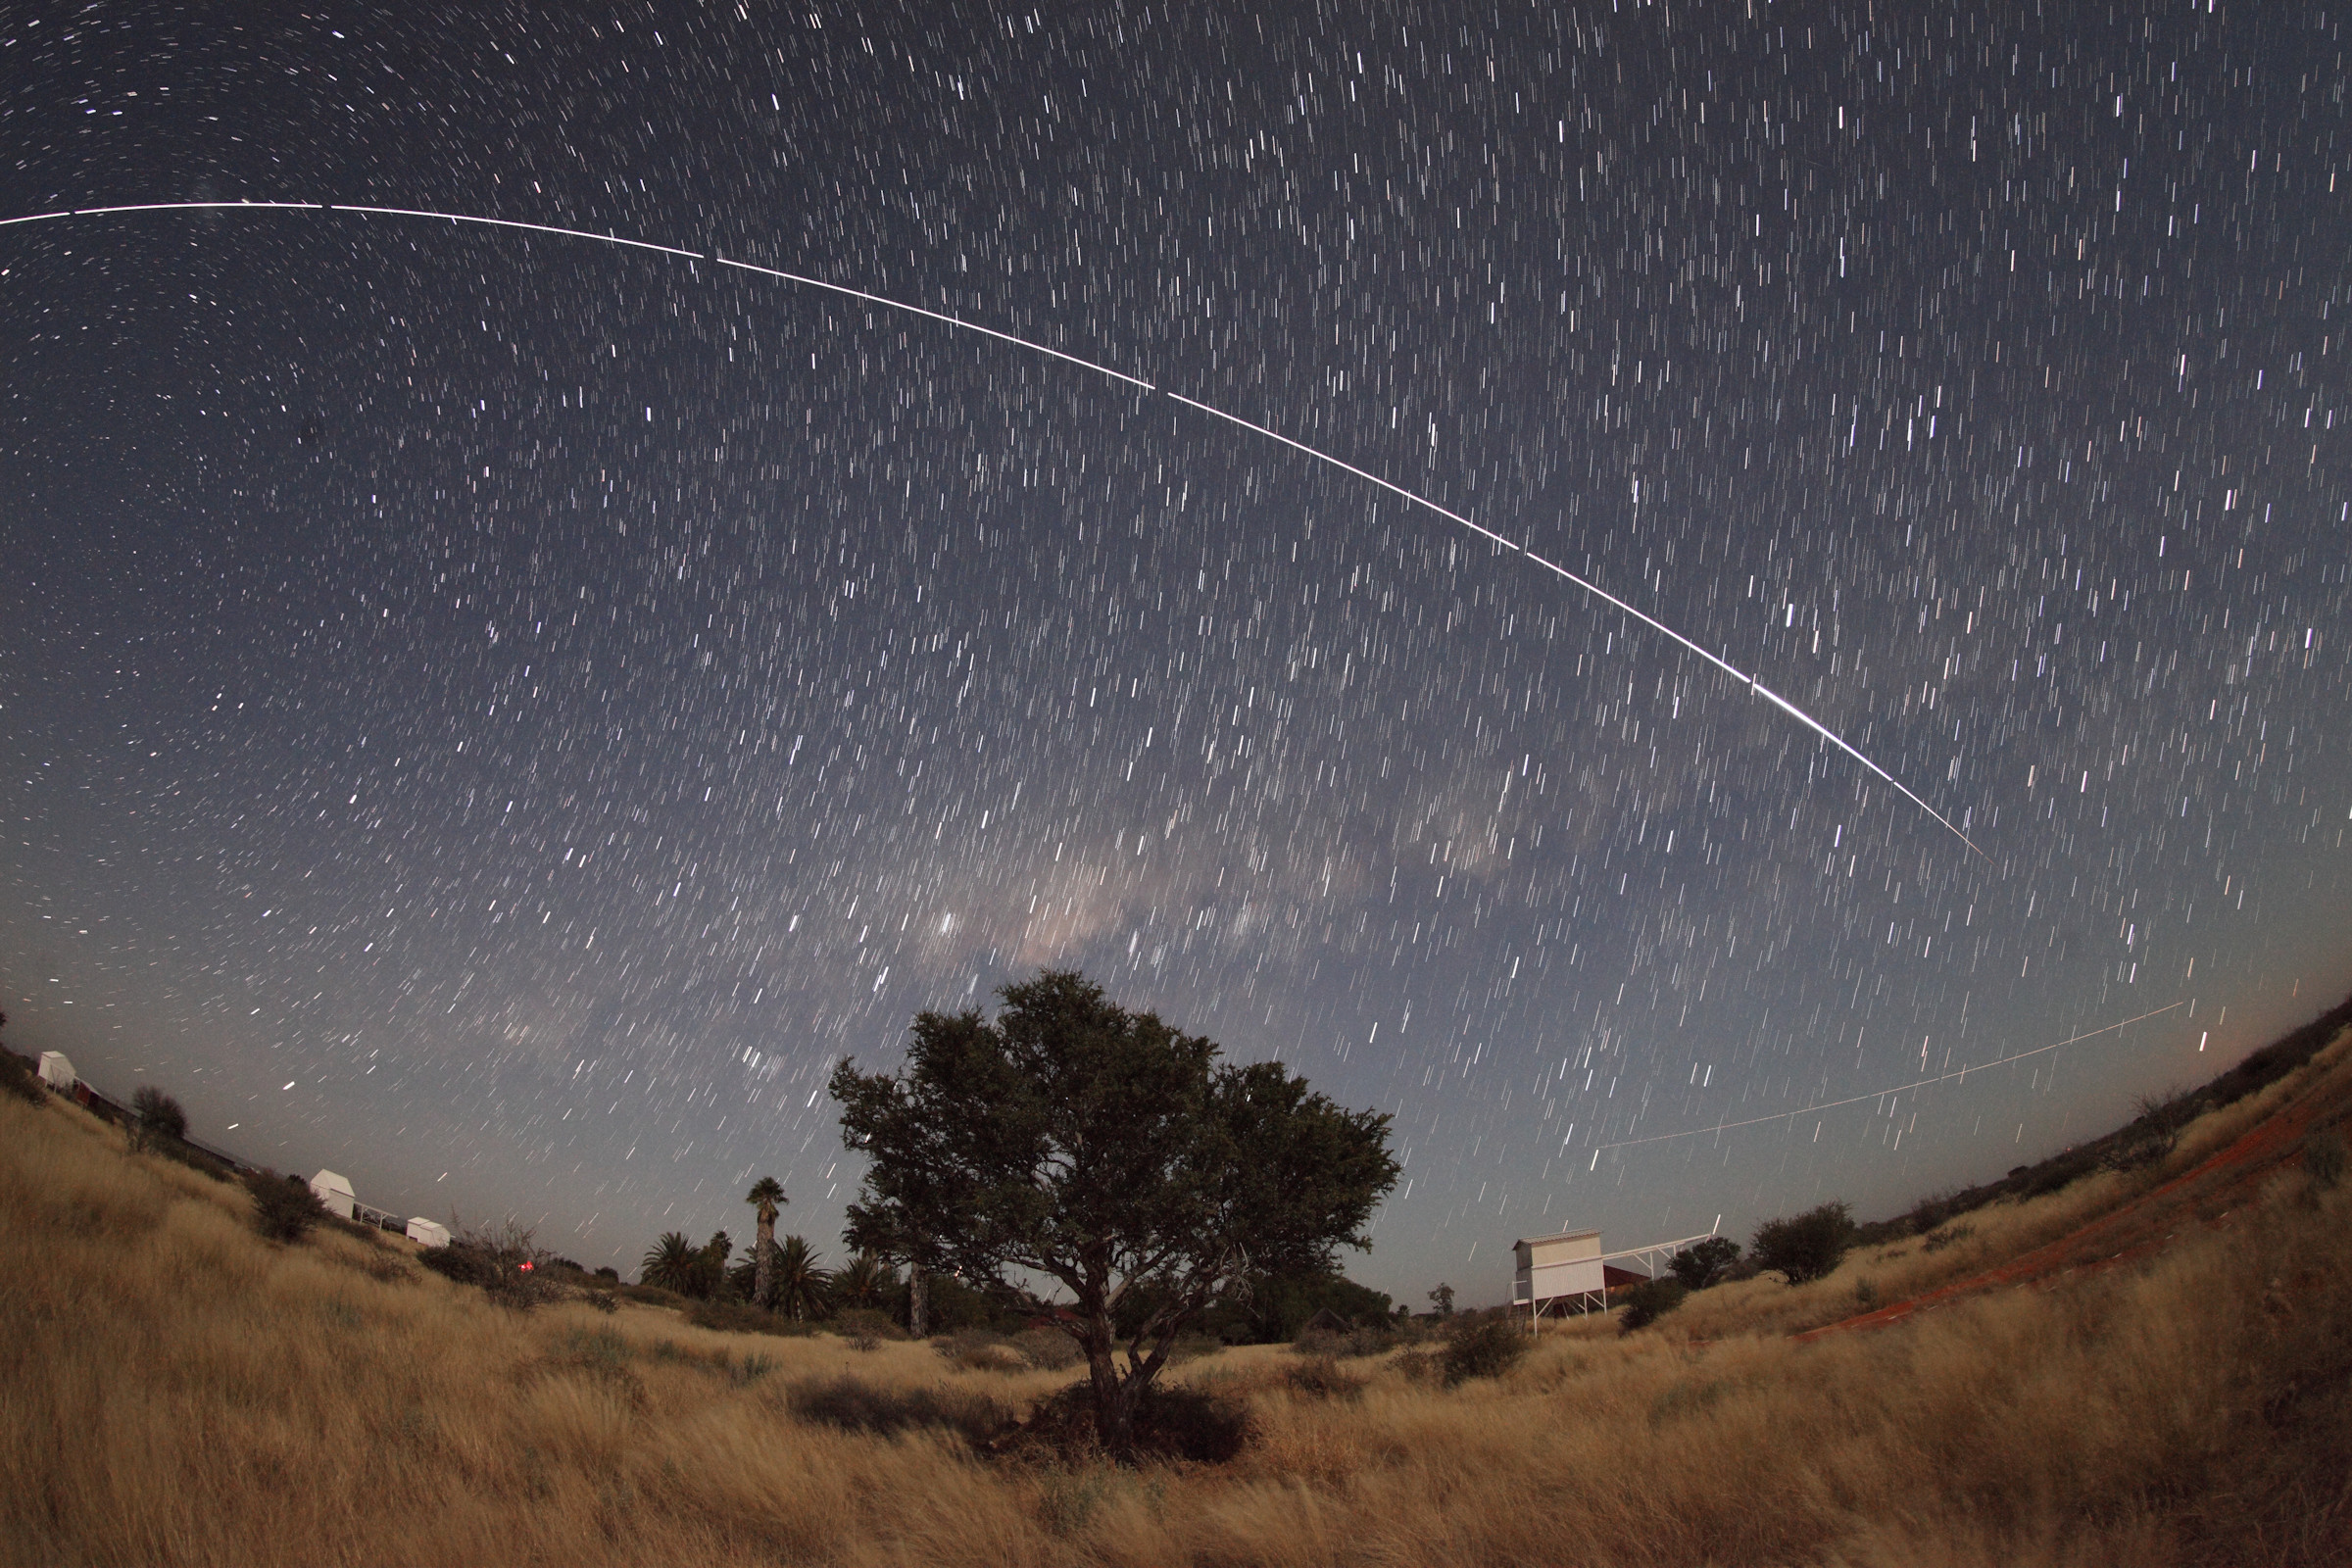 20120613-0420-ISS-5DII-15mm-F4-ISO3200-8x30s